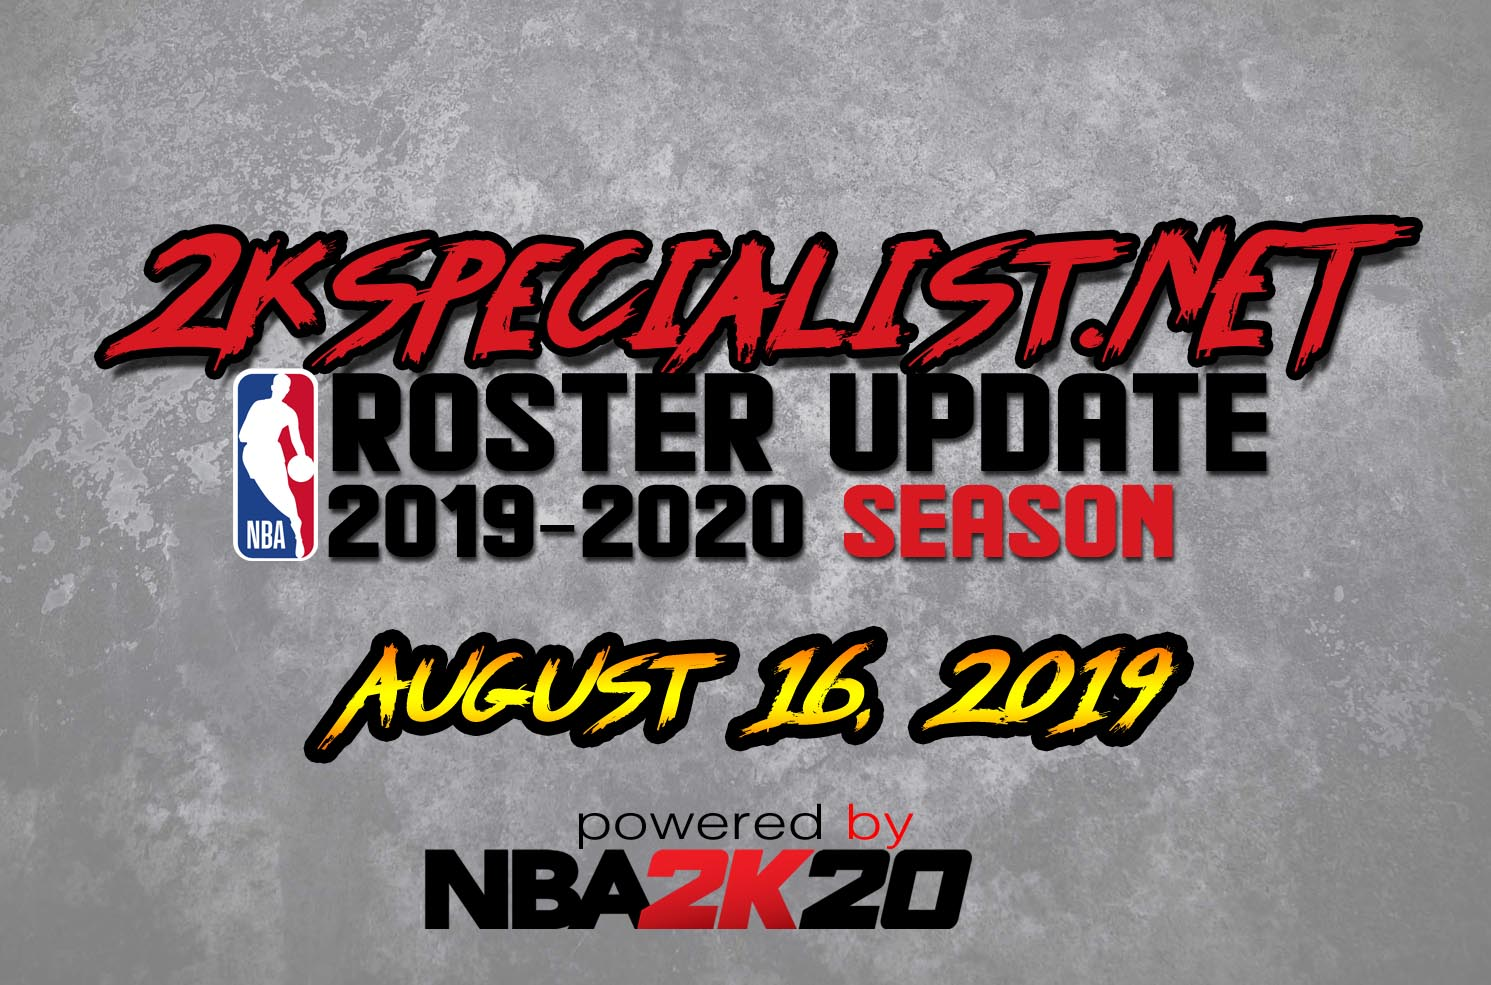 2KSPECIALIST'S NBA 2K19 ROSTER UPDATE (08 16 19) RELEASED